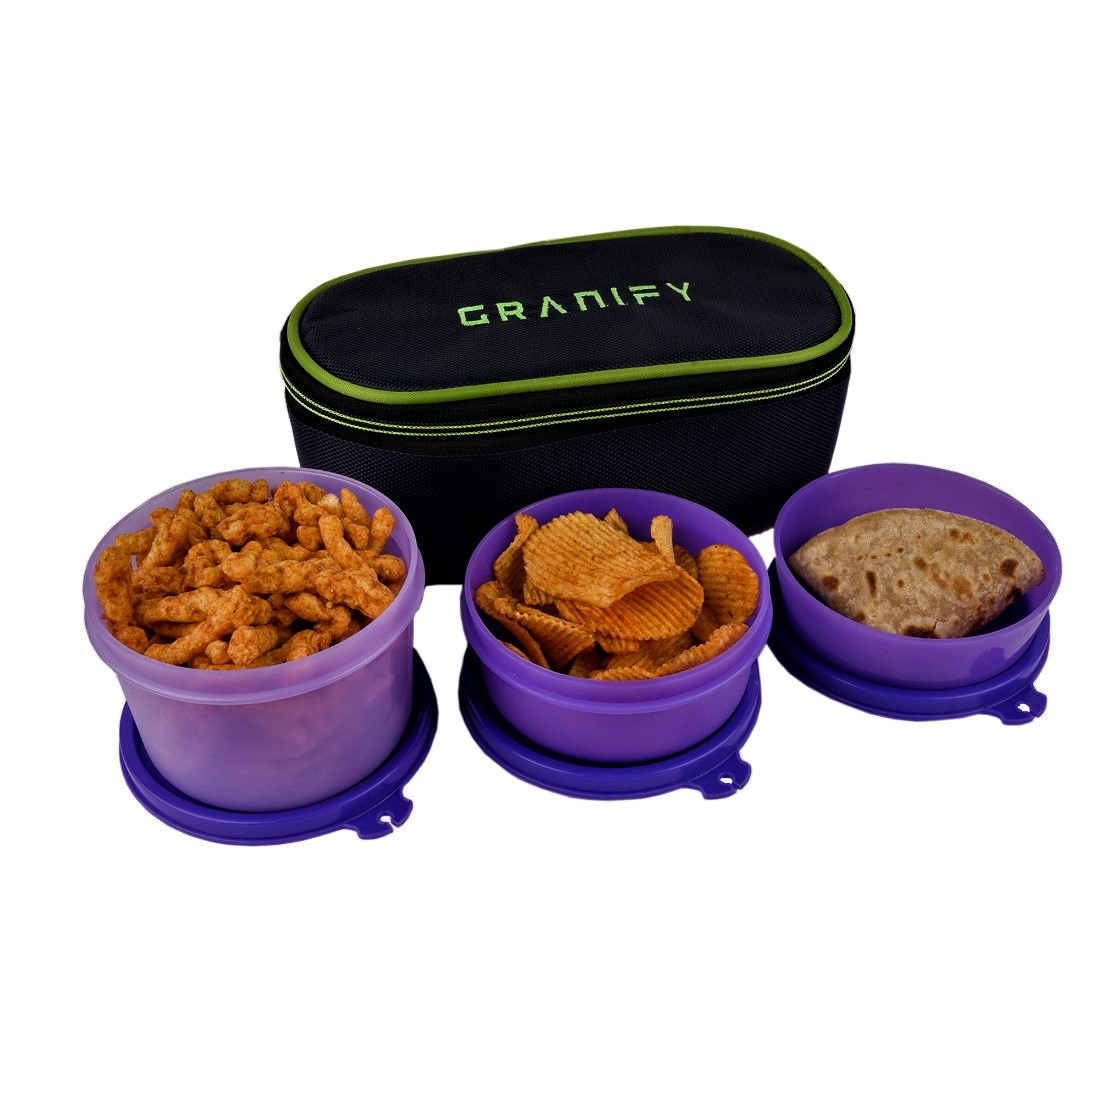 GRANIFY Lunch Box   3 Containers With Bag Cover   F